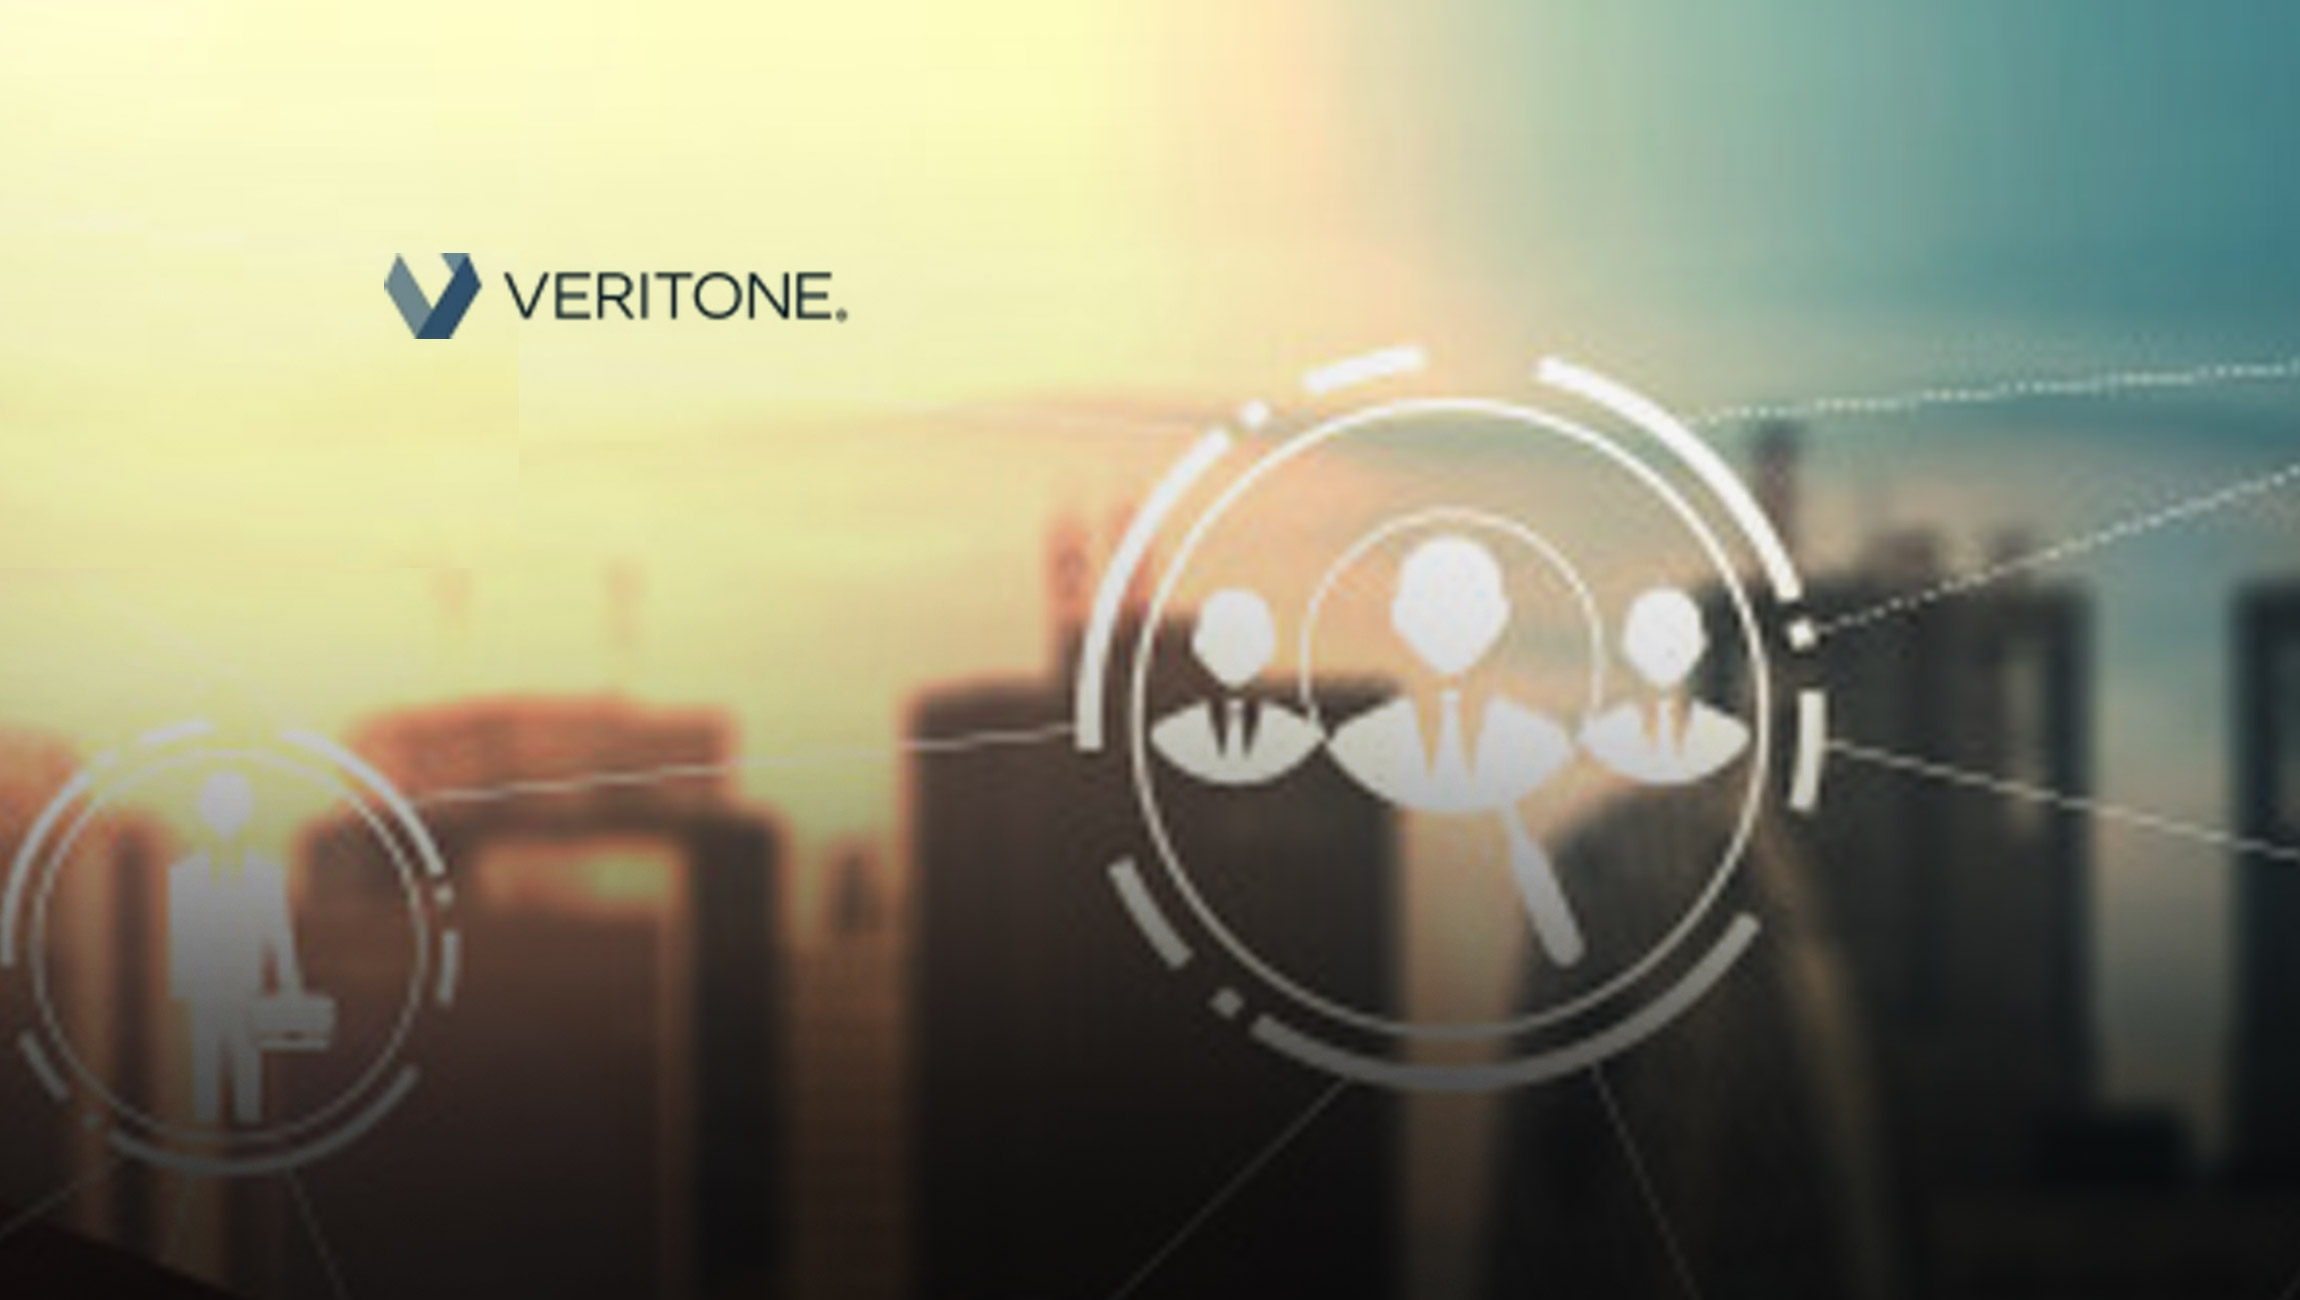 Veritone Appoints New Chief Financial Officer in Planned Transition